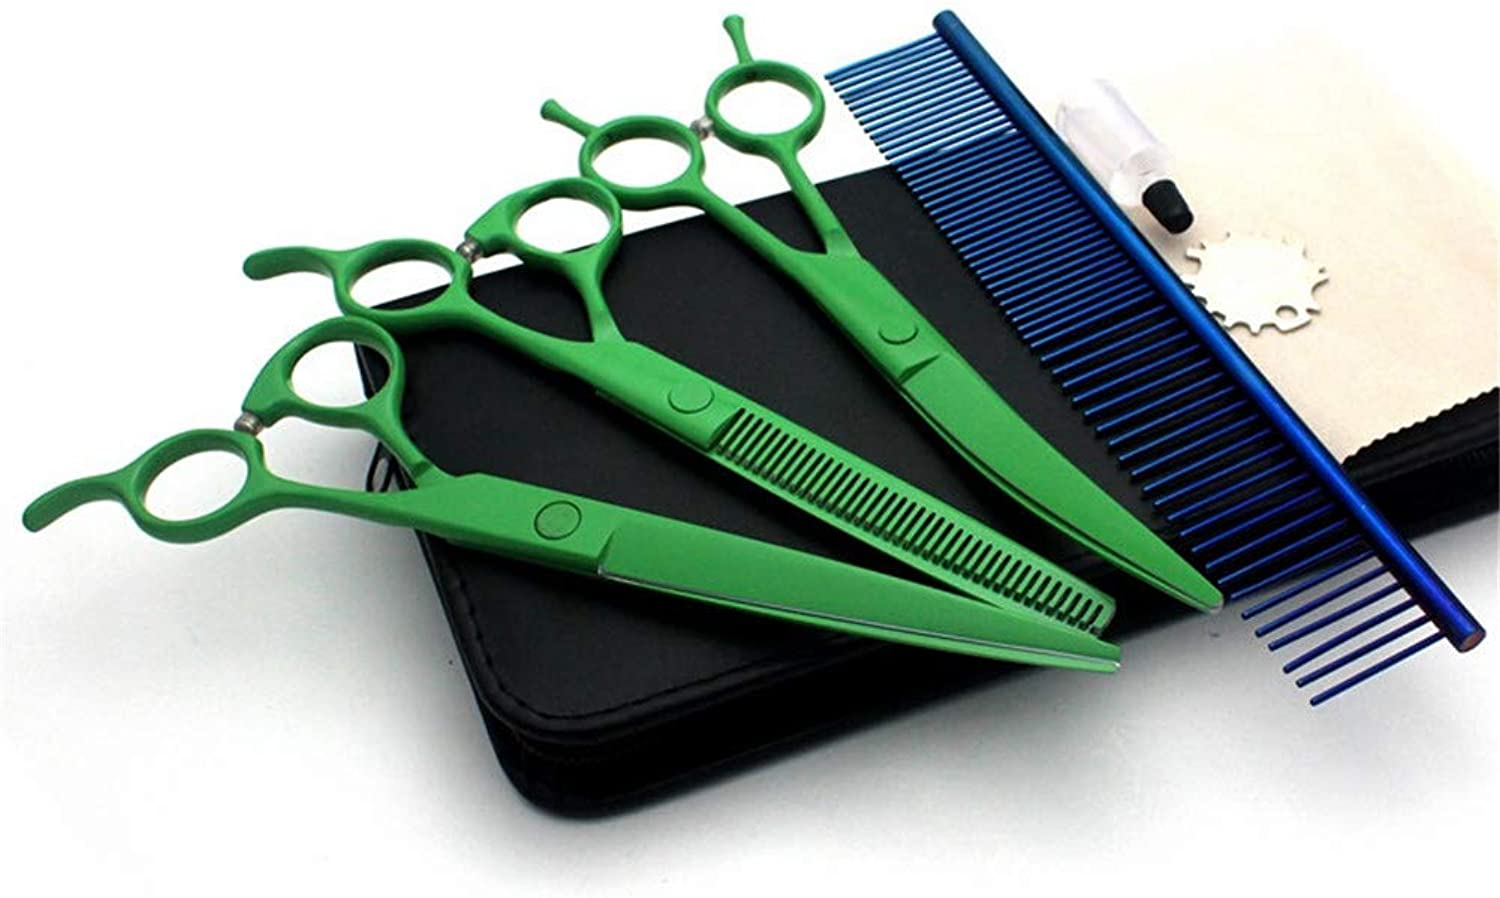 Dog Grooming Scissors KitThinning and Curved Sharp Shears for Small or Large Dogs, Cats or Other Pets (Green)